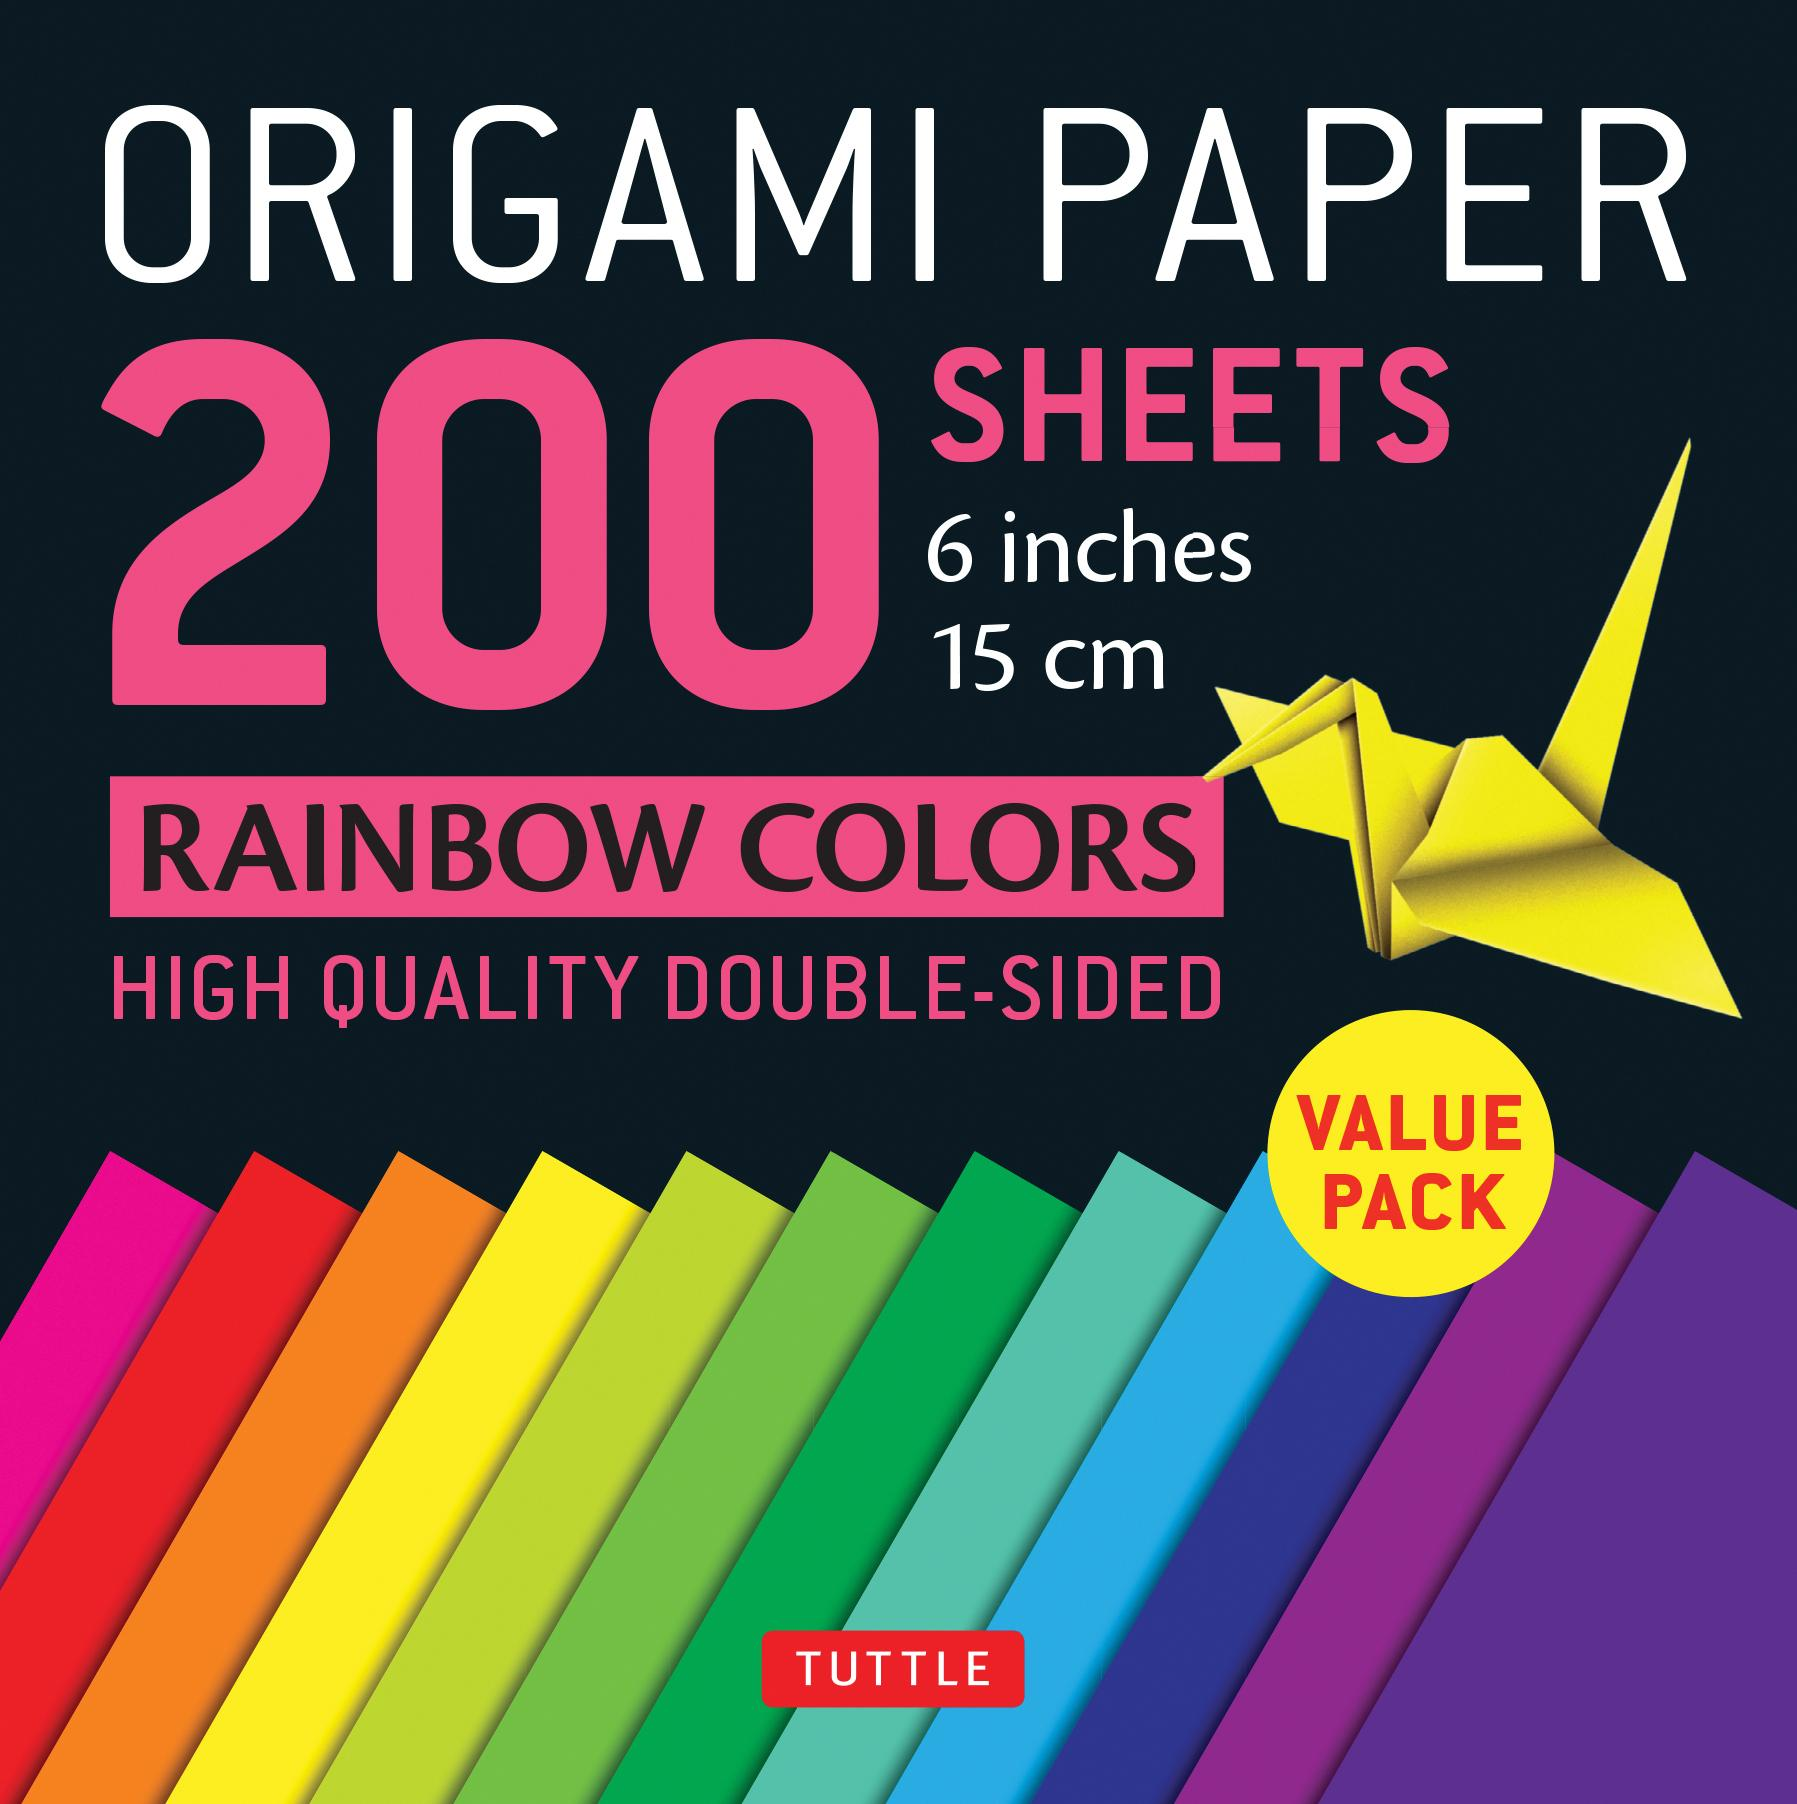 "Origami Paper 200 Sheets Rainbow Colors 6"" (15 CM): Tuttle Origami Paper: High-Quality Origami Sheets Printed with 12 Different Colors: Instructions for 8 Projects Included (Other)"